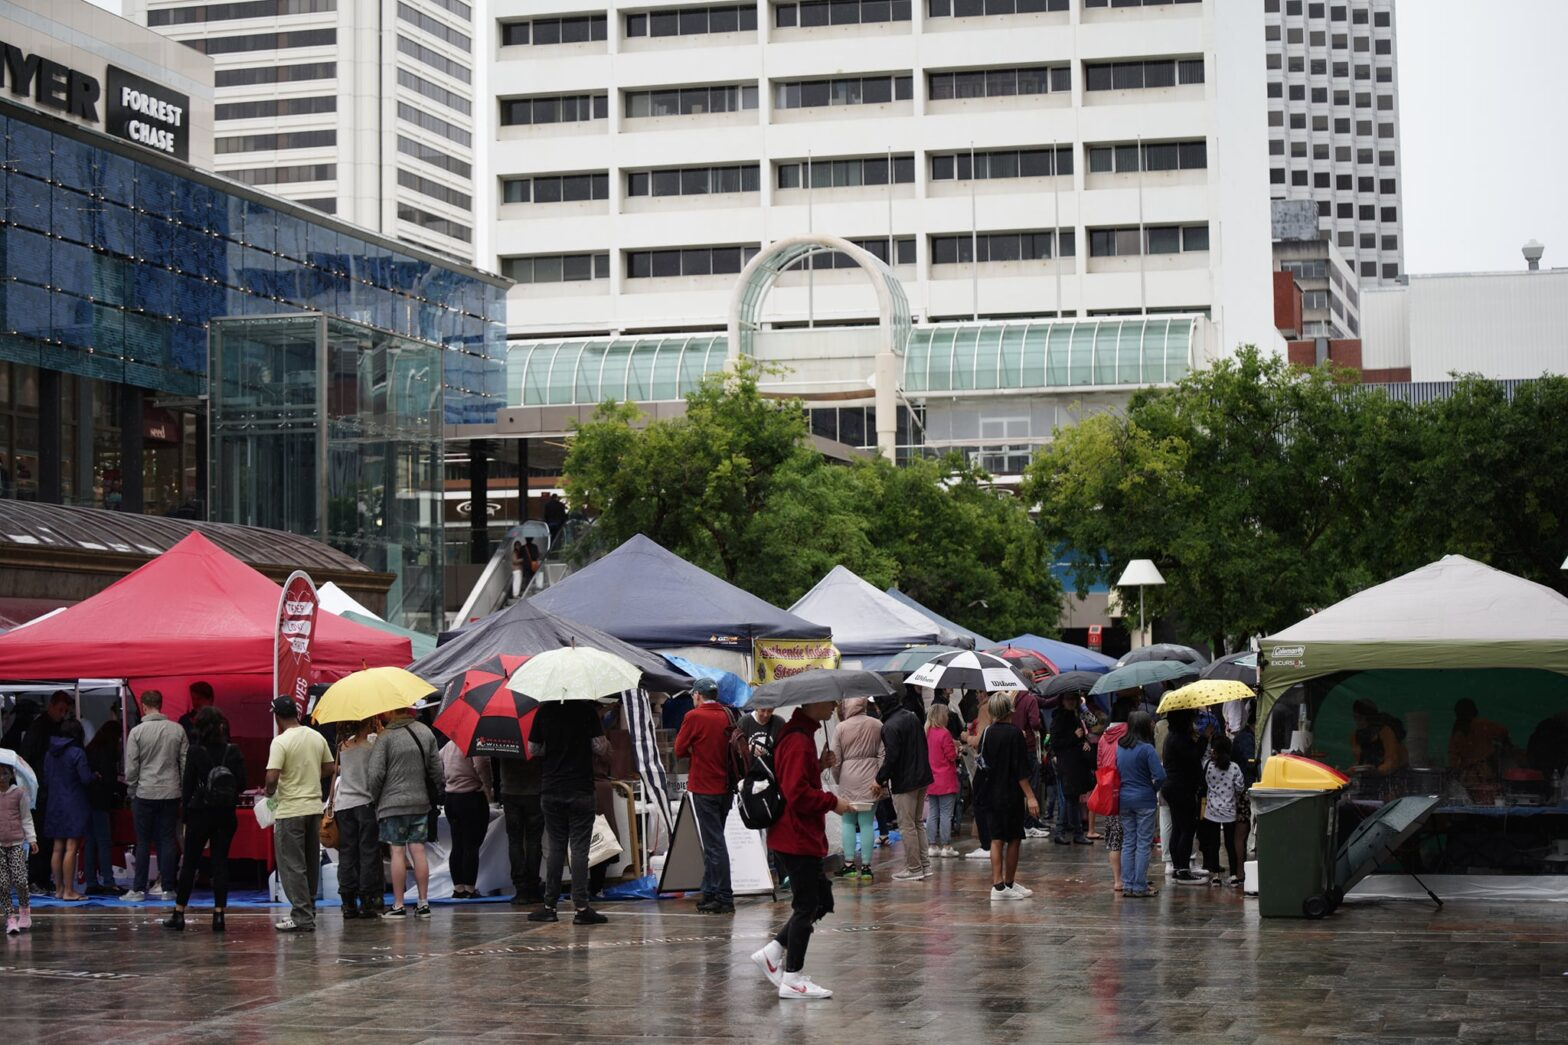 Image depicting crowds with umbrellas at a very wet World Vegan Day event.